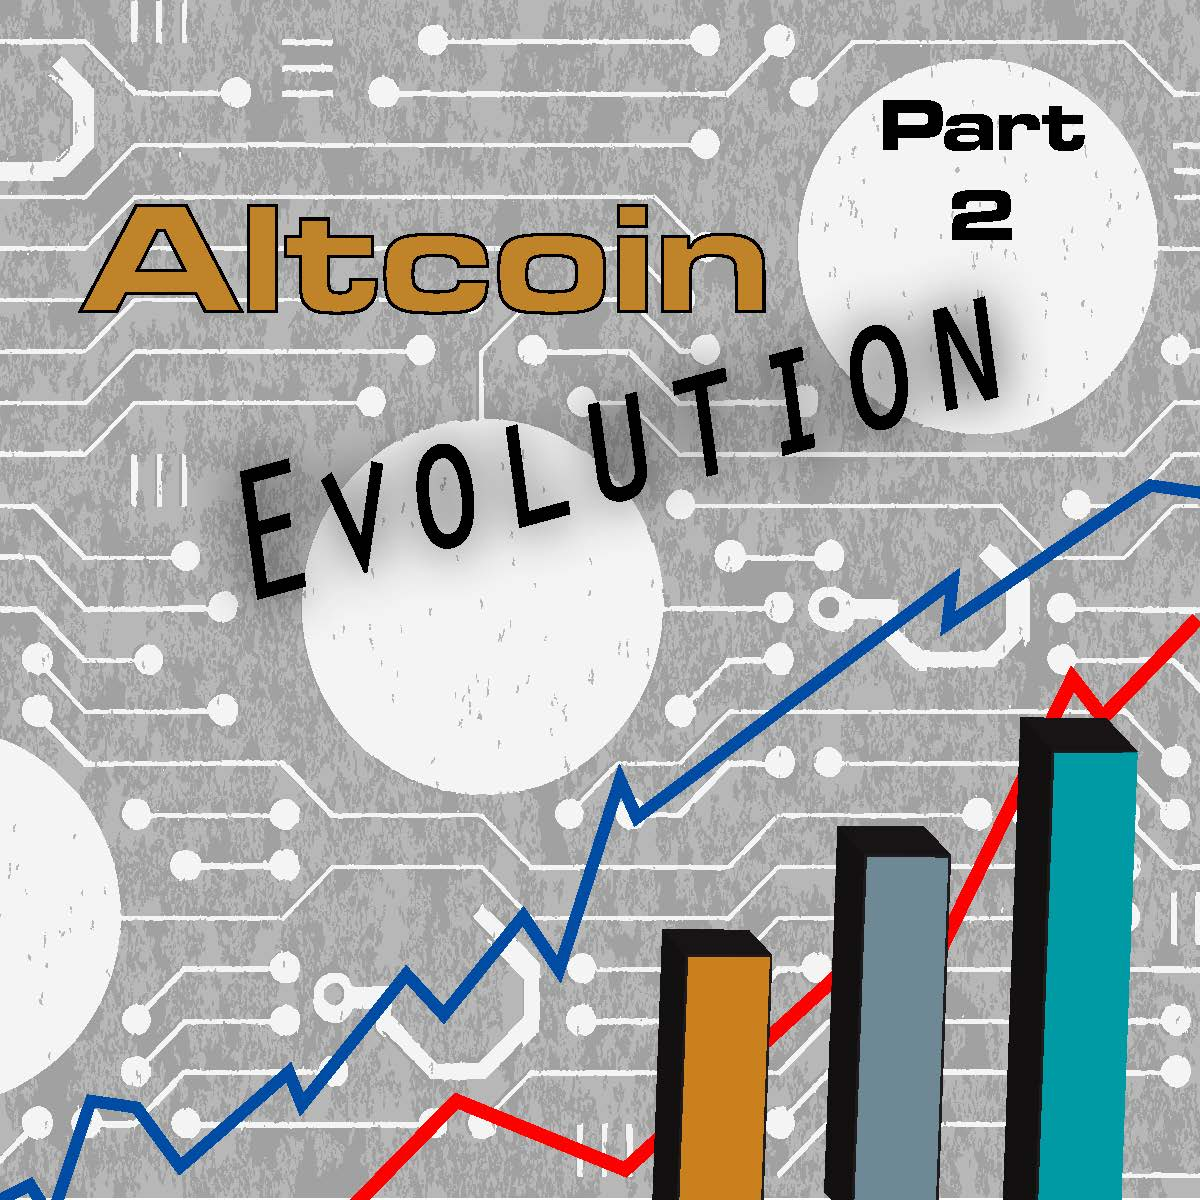 The Altcoin Evolution: Part II